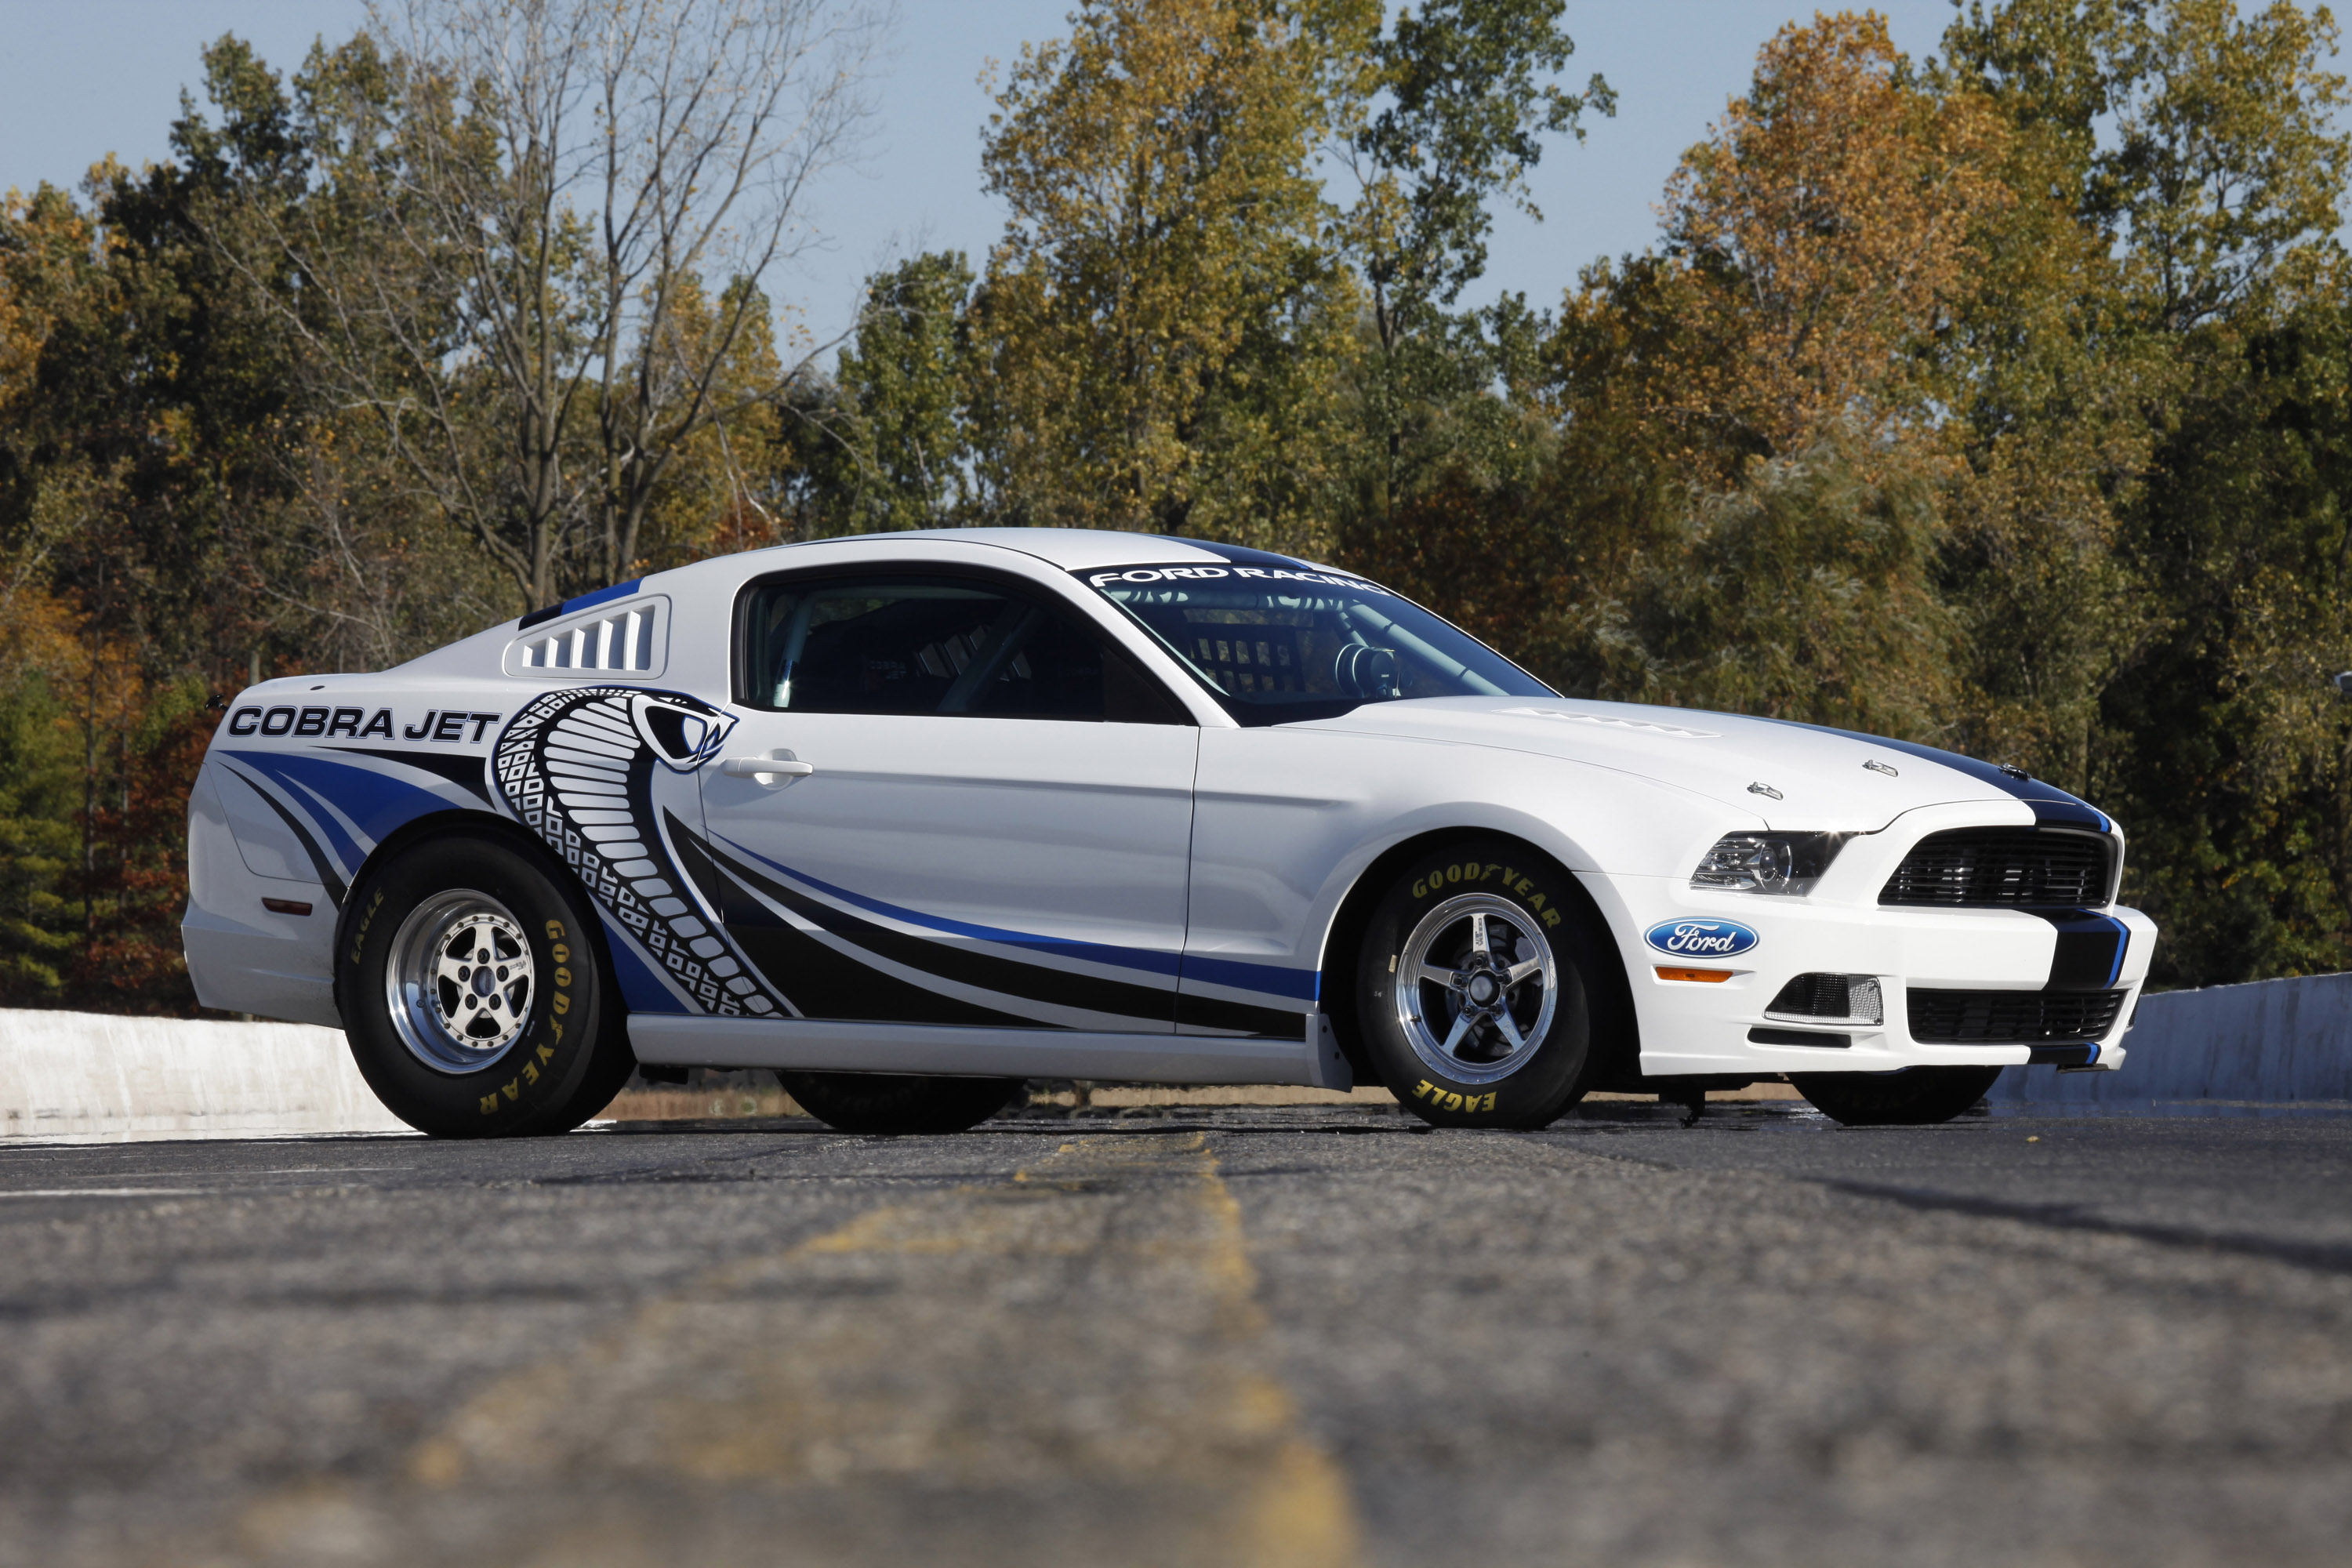 2012 Ford Mustang Cobra Jet Twin Turbo Concept Hd Pictures Boss 302 Keys Thumbnail Photo 80492